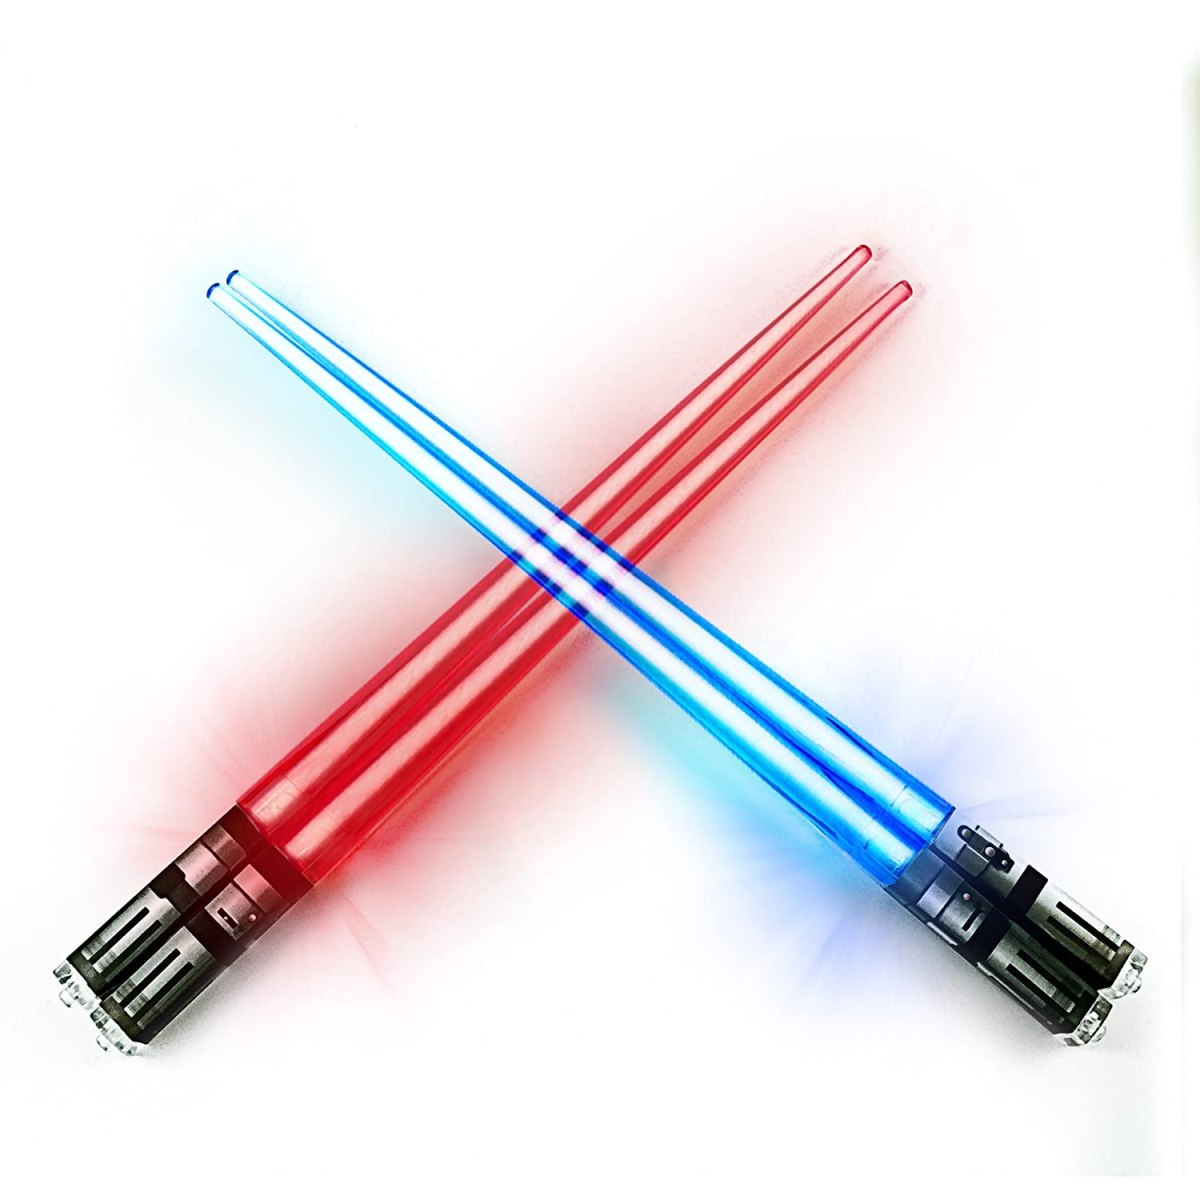 Buy Chop Sabers Light Up Lightsaber Chopsticks Set, 2 Pairs, Red Blue  Online at Low Prices in India - Amazon.in